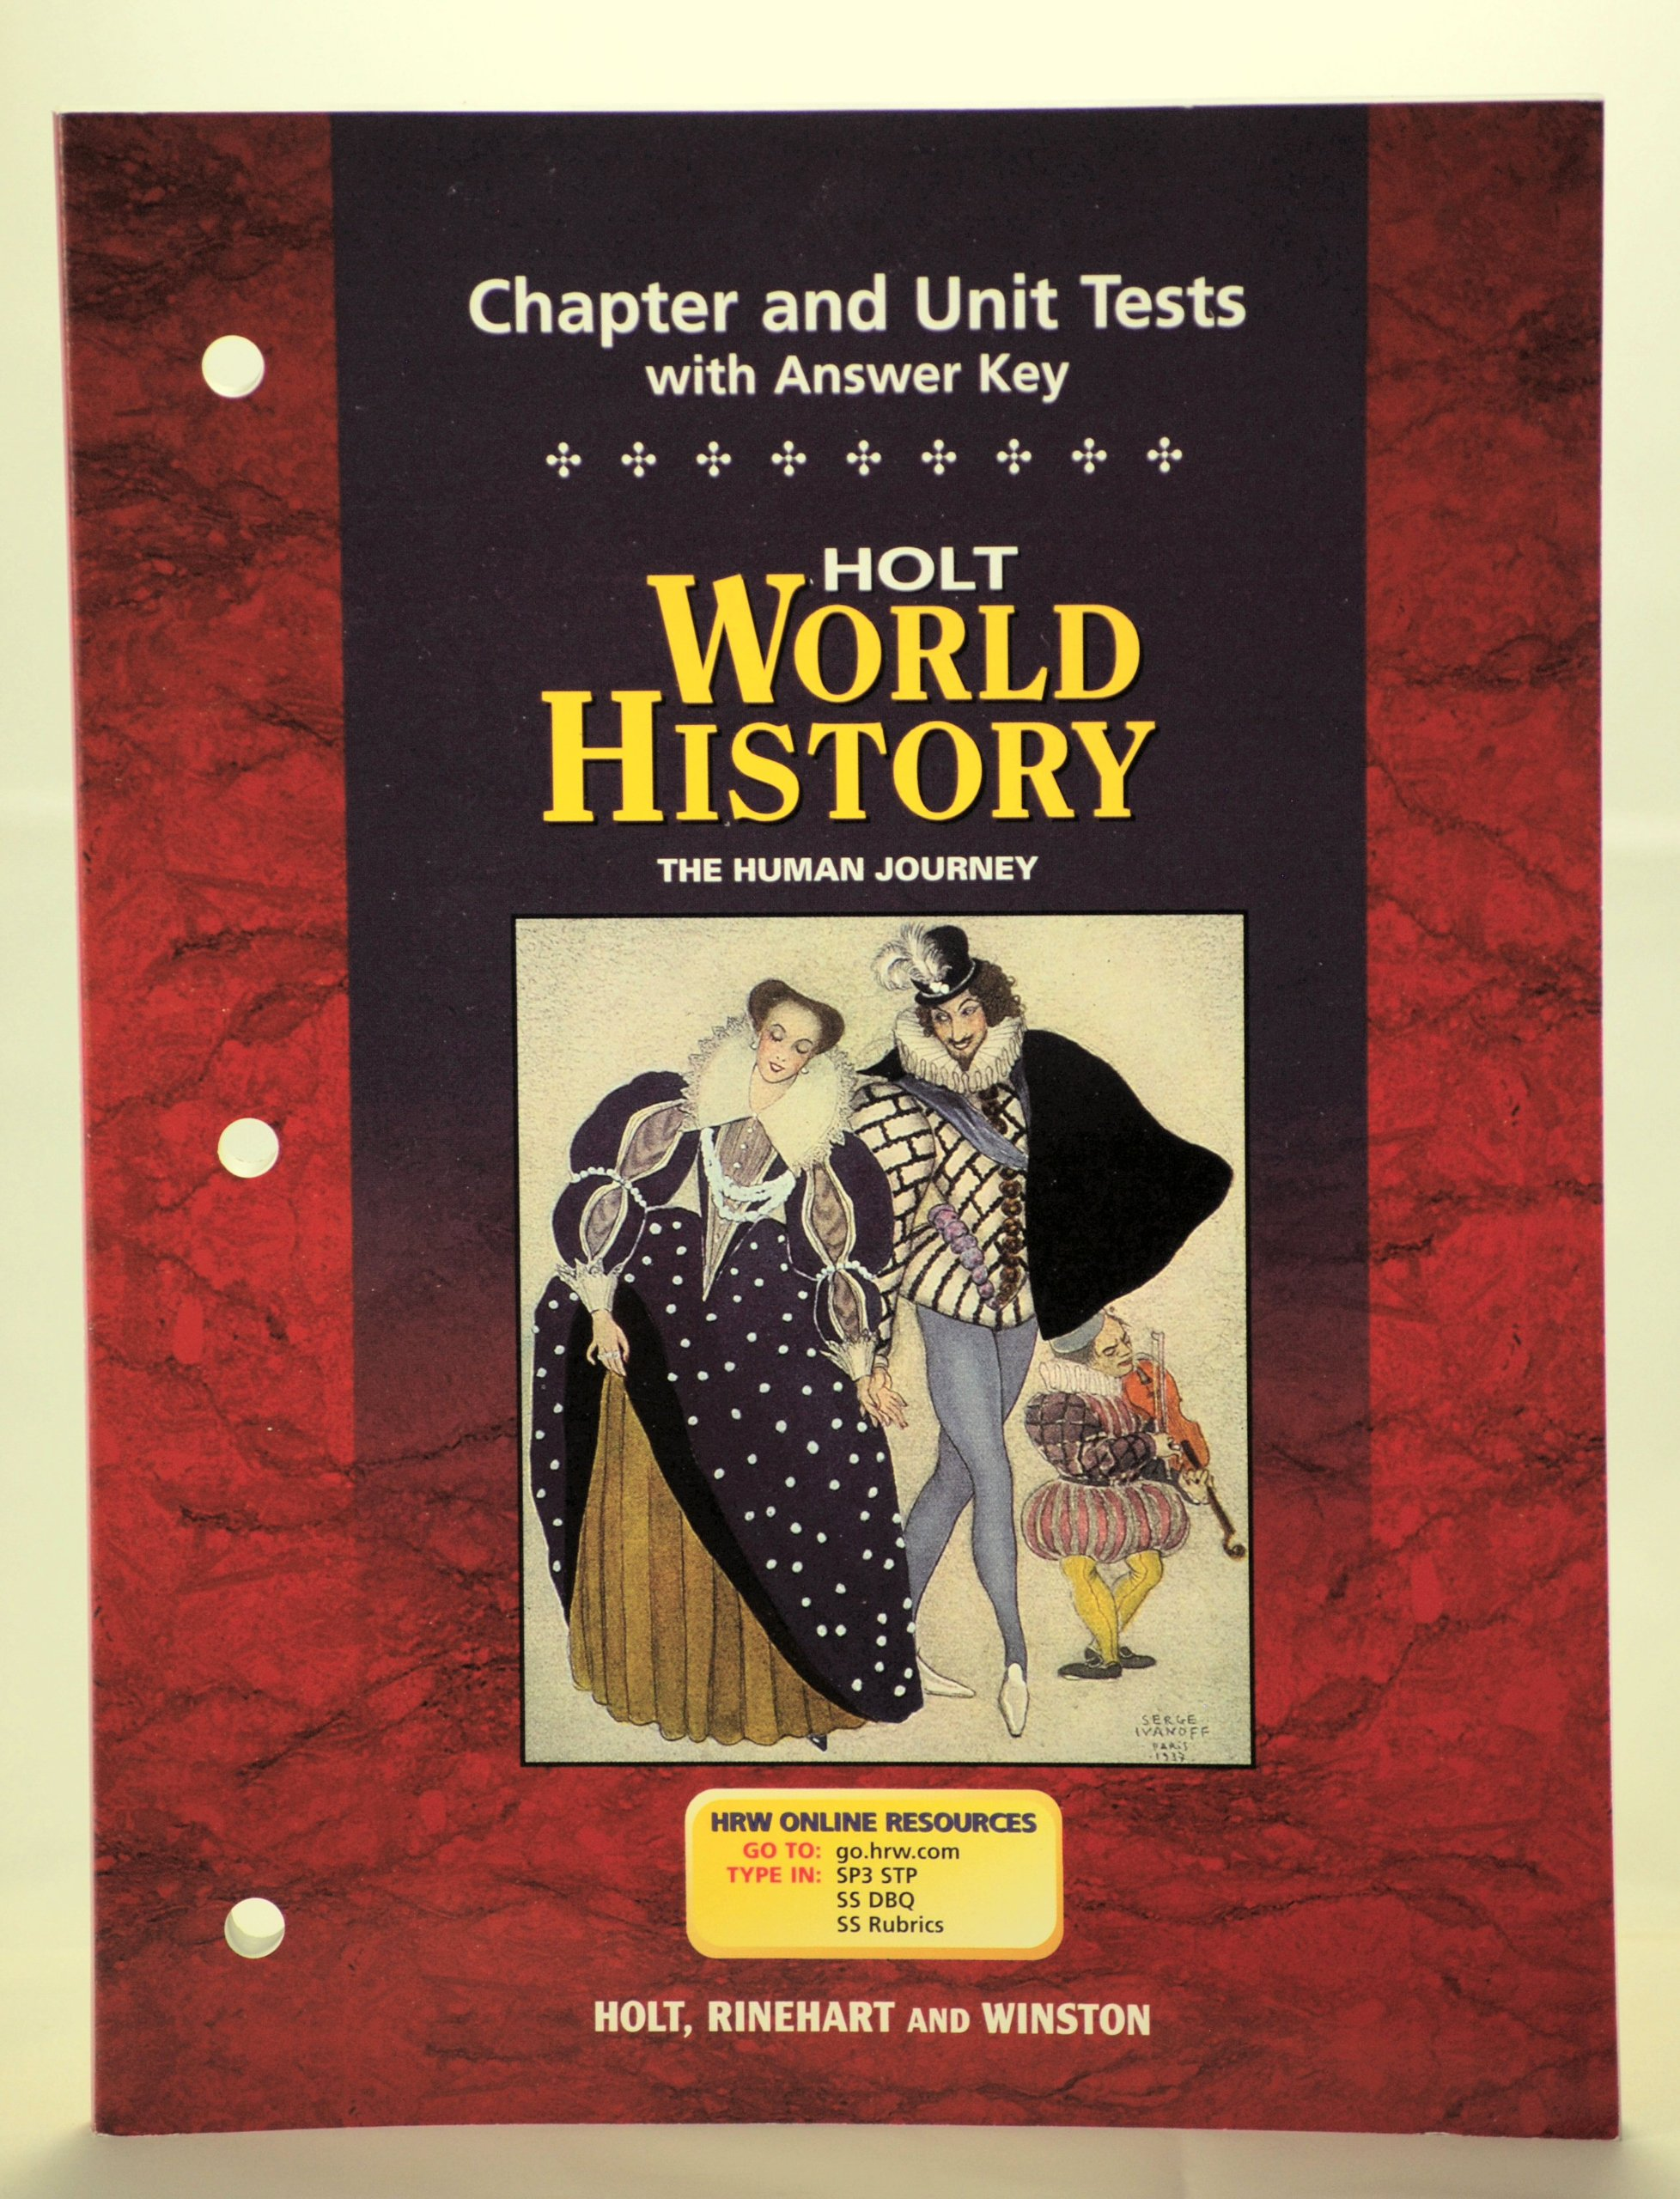 World history the human journey chapter and unit tests holt world history the human journey chapter and unit tests holt rinehart winston 9780030657344 amazon books fandeluxe Images